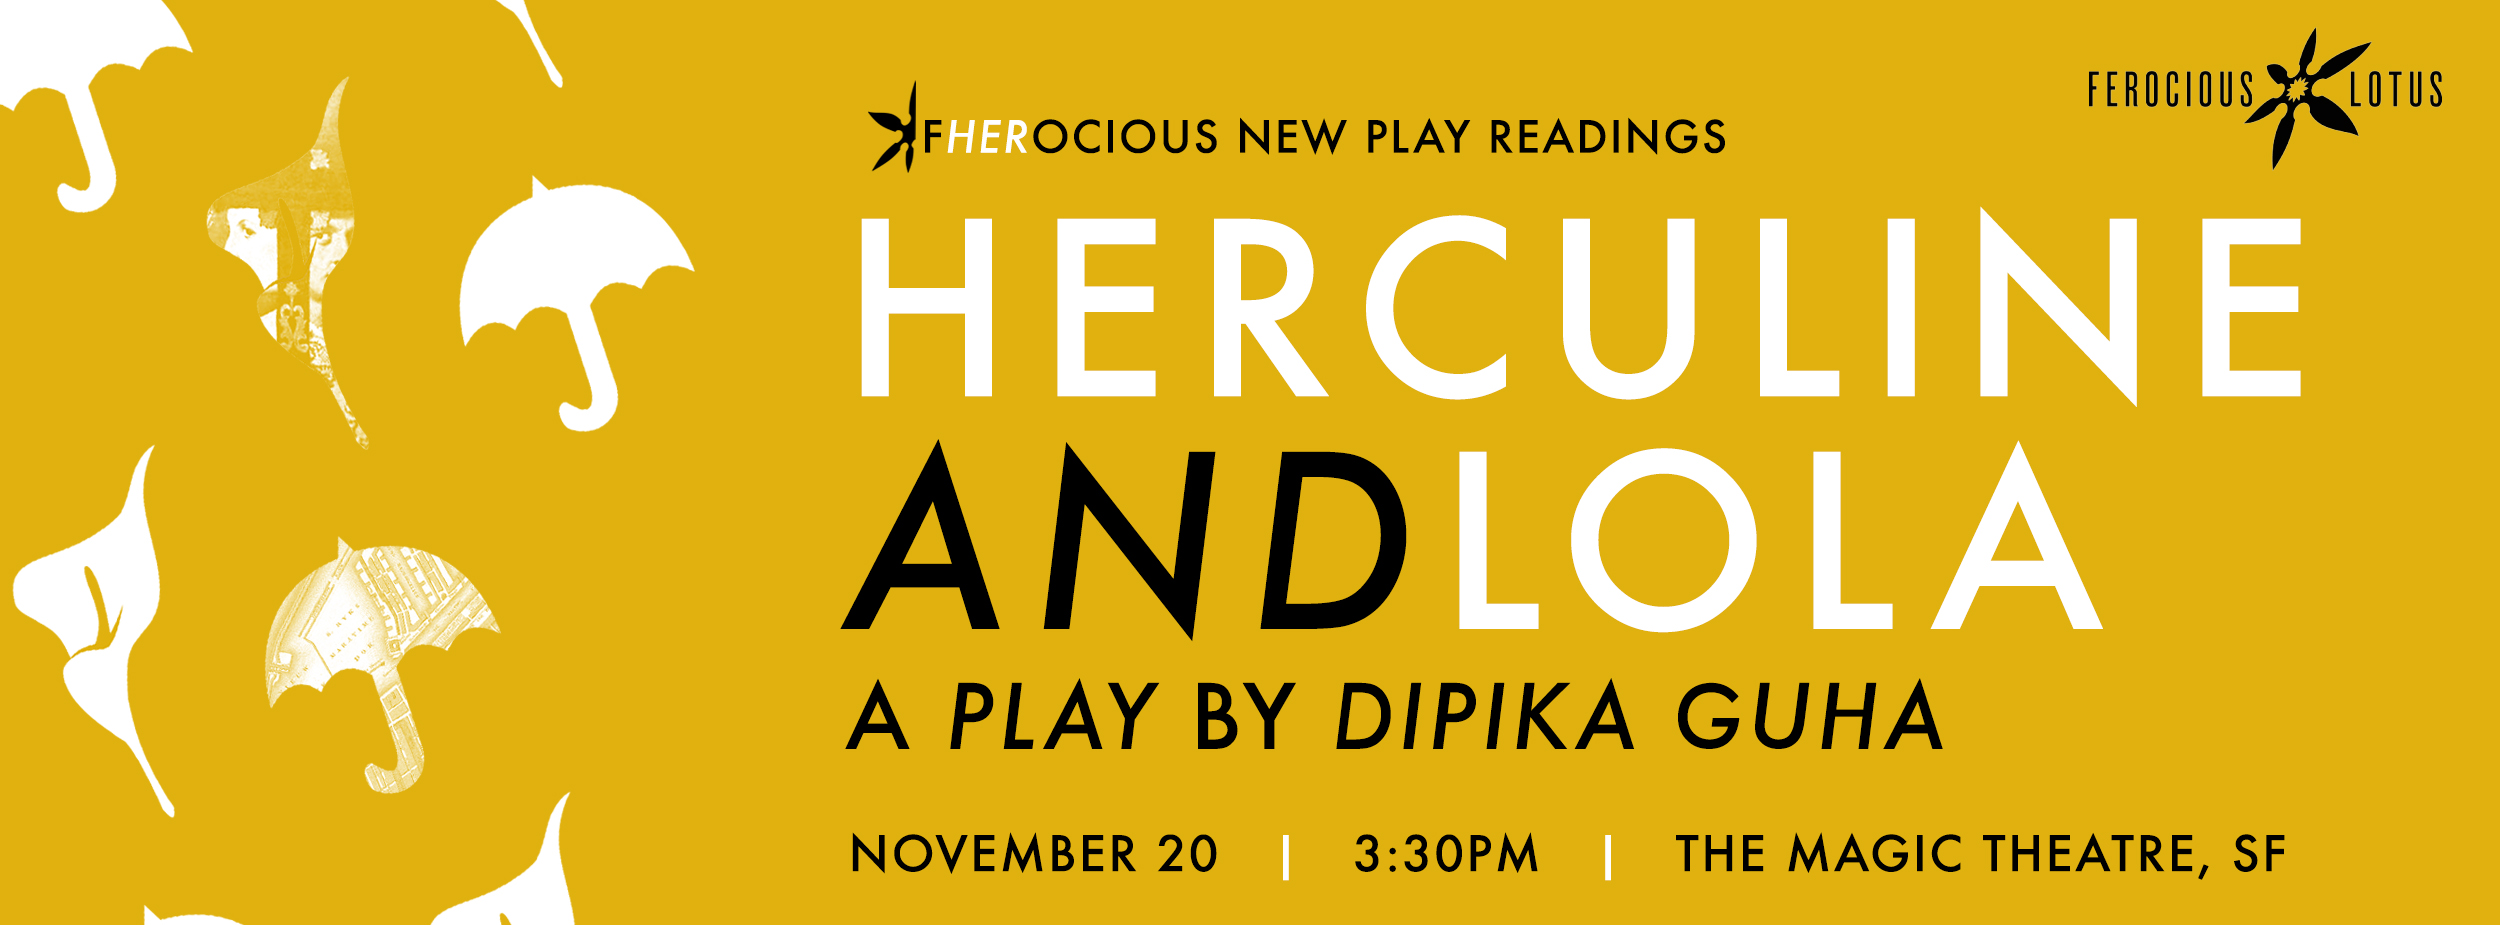 "HERCULINE AND LOLA , by  Dipika Guha    Nov. 20 | Sunday | 330p  Directed by  Desdemona Chiang  While vacationing in Amsterdam, American teenager Lola begins to hallucinate. A century earlier, frustrated and misunderstood, schoolteacher Herculine  retreats into a solitary white room.  Herculine and Lola  is a story about two people united by the power of their imagination and by love--inspired by the diary of the first ""true hermaphrodite"" Herculine Barbin.  Featuring Esperanza Catubig*, Keiko Shimosato Carreiro*, Rob Dario, Melissa Locsin*, Charisse Loriaux*,   Mohammad Shehata*,   Beverly Sotelo*, Ogie Zulueta*"